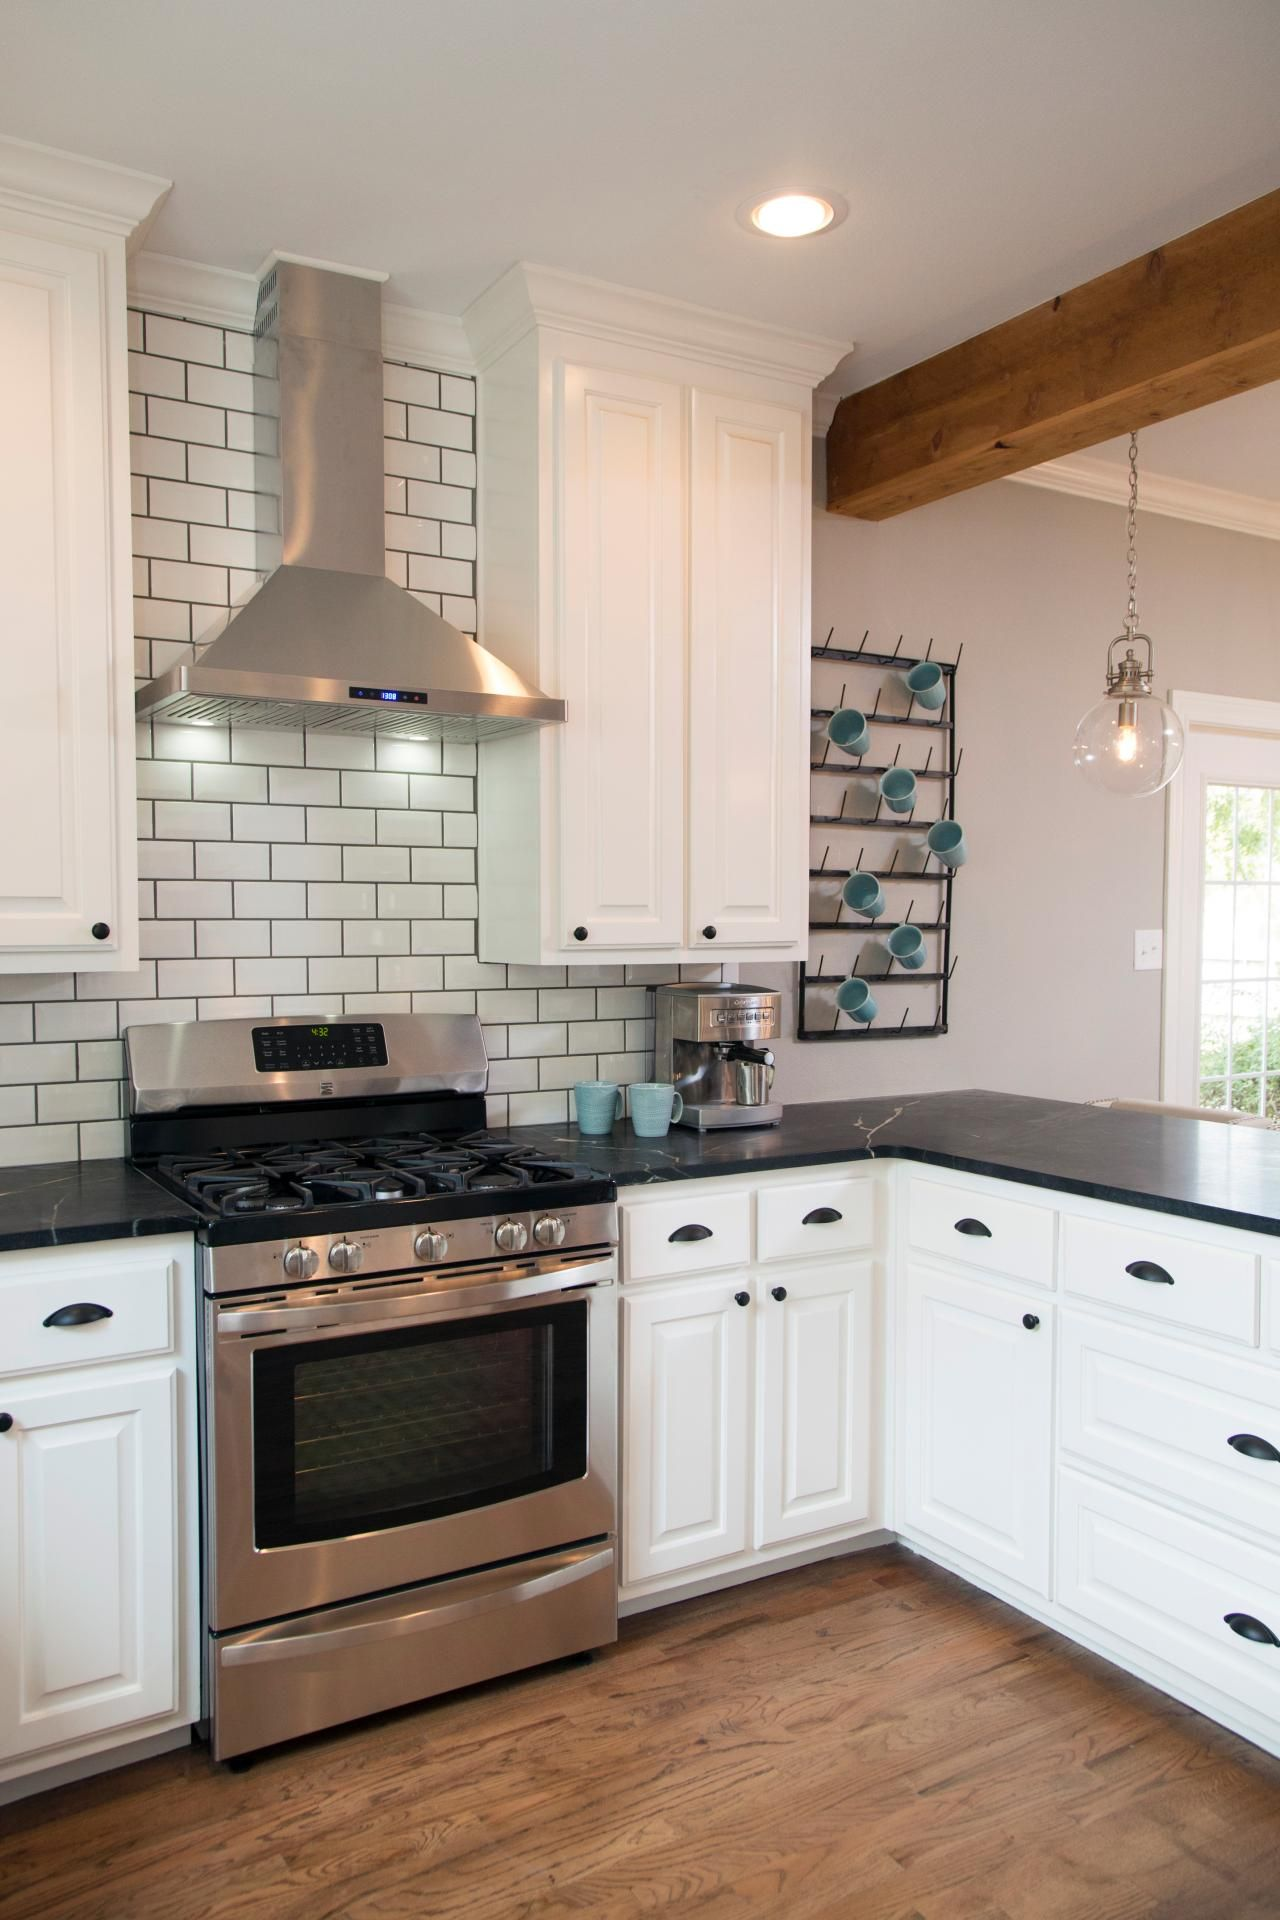 fixer upper hosts chip and joanna gaines renovated the homeowners homeowners kitchen and added a new stainless steel range and vent hood surrounded by a beveled subway tile backsplash crisp white cabinetry and black